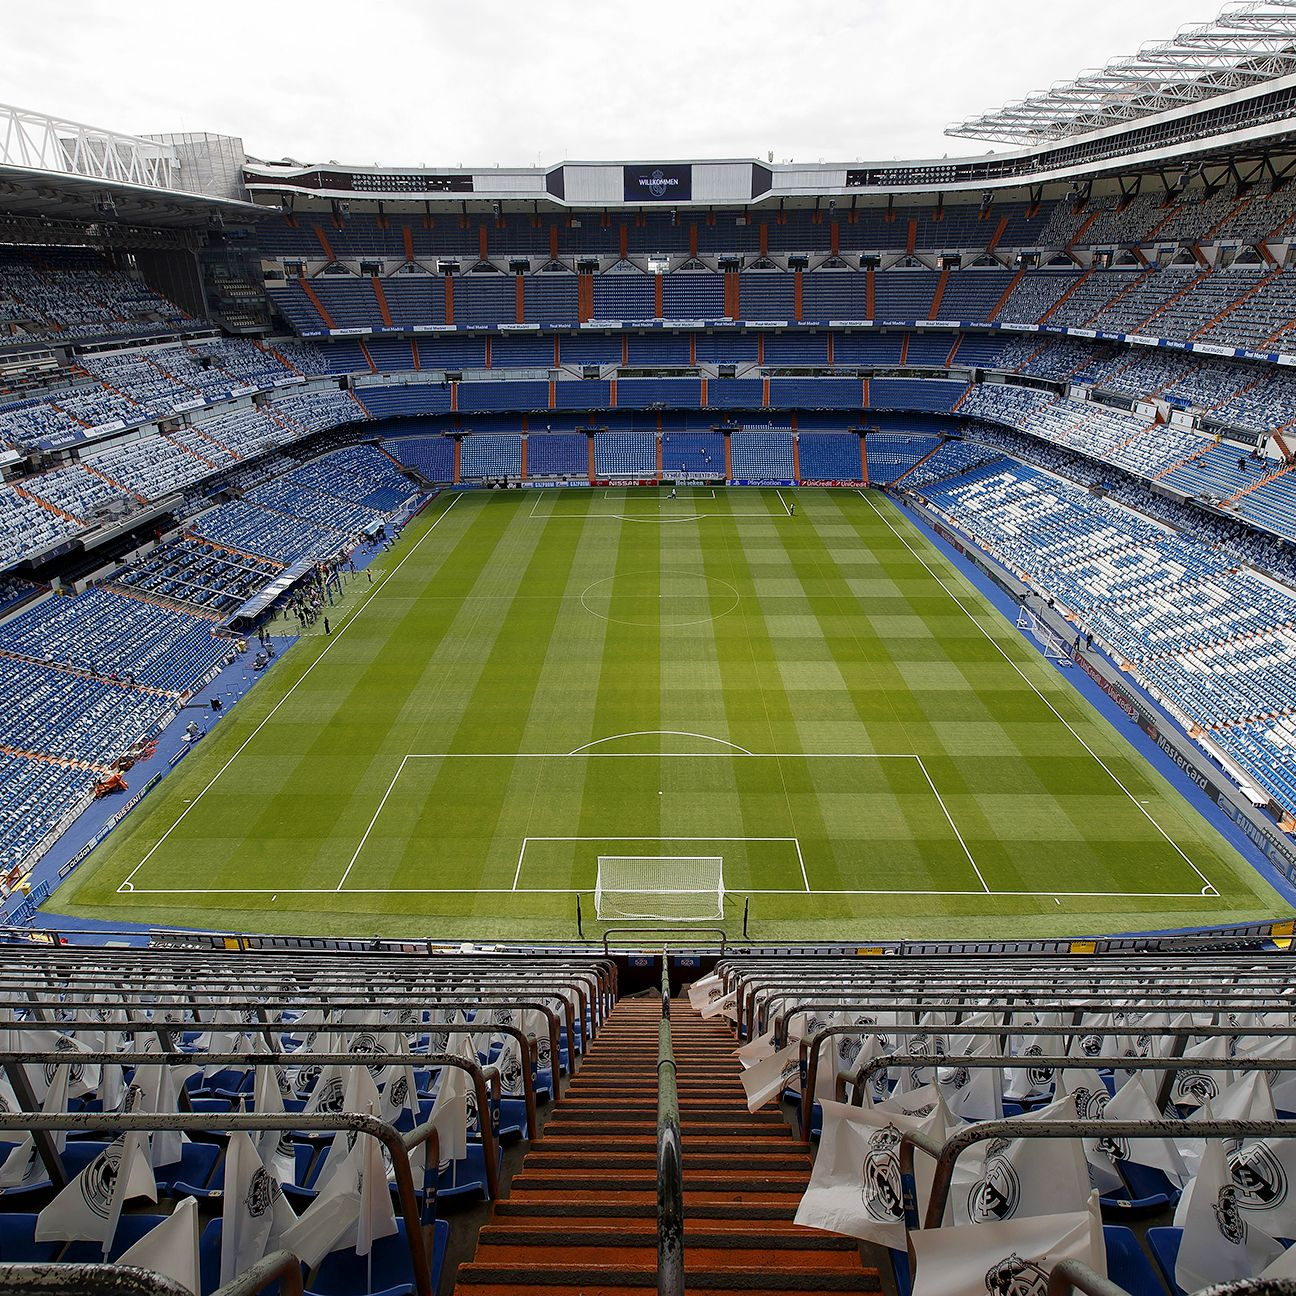 A spectator would be hard-pressed to find a bad seat at the Bernabeu.